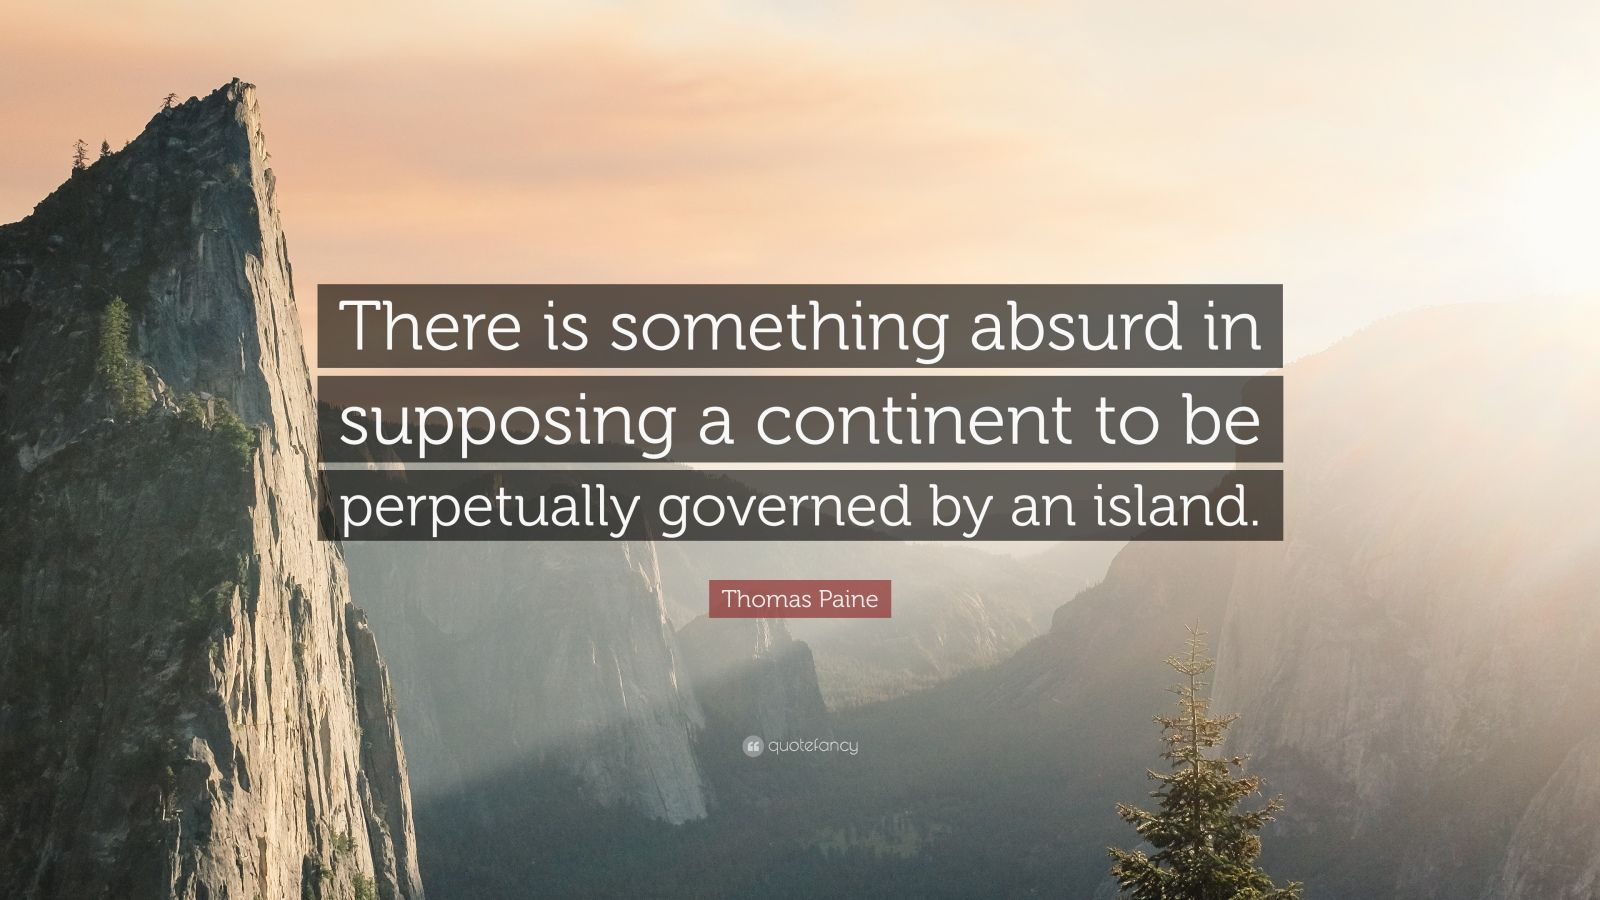 """Thomas Paine Quote: """"There is something absurd in supposing a continent to be perpetually governed by an island."""""""